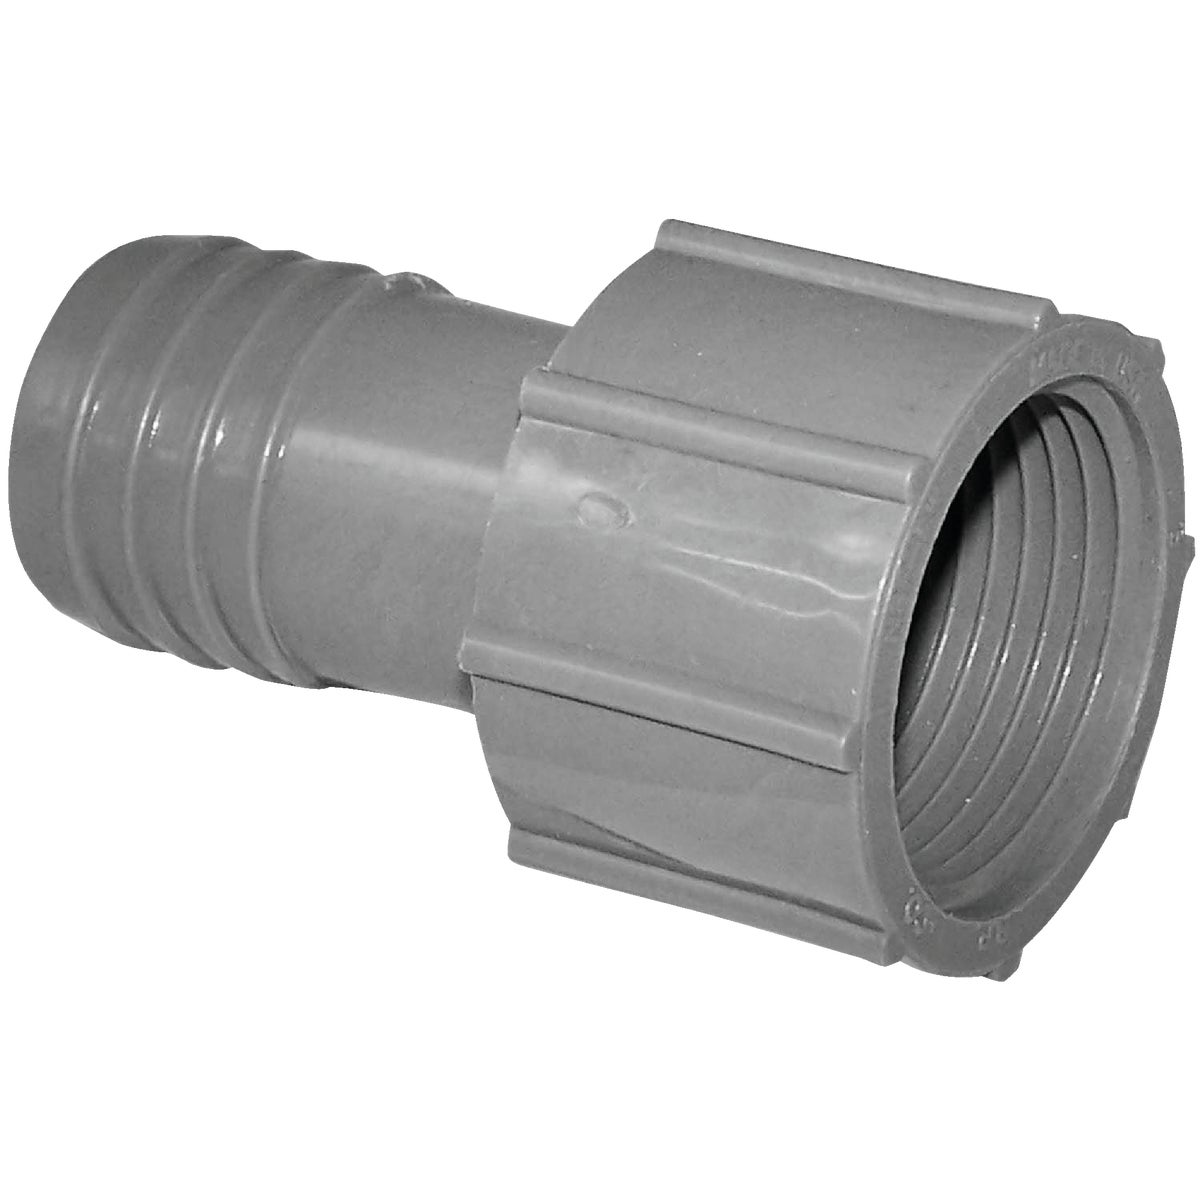 "1"" POLY FIPXINS ADAPTER - 350310 by Genova Inc"